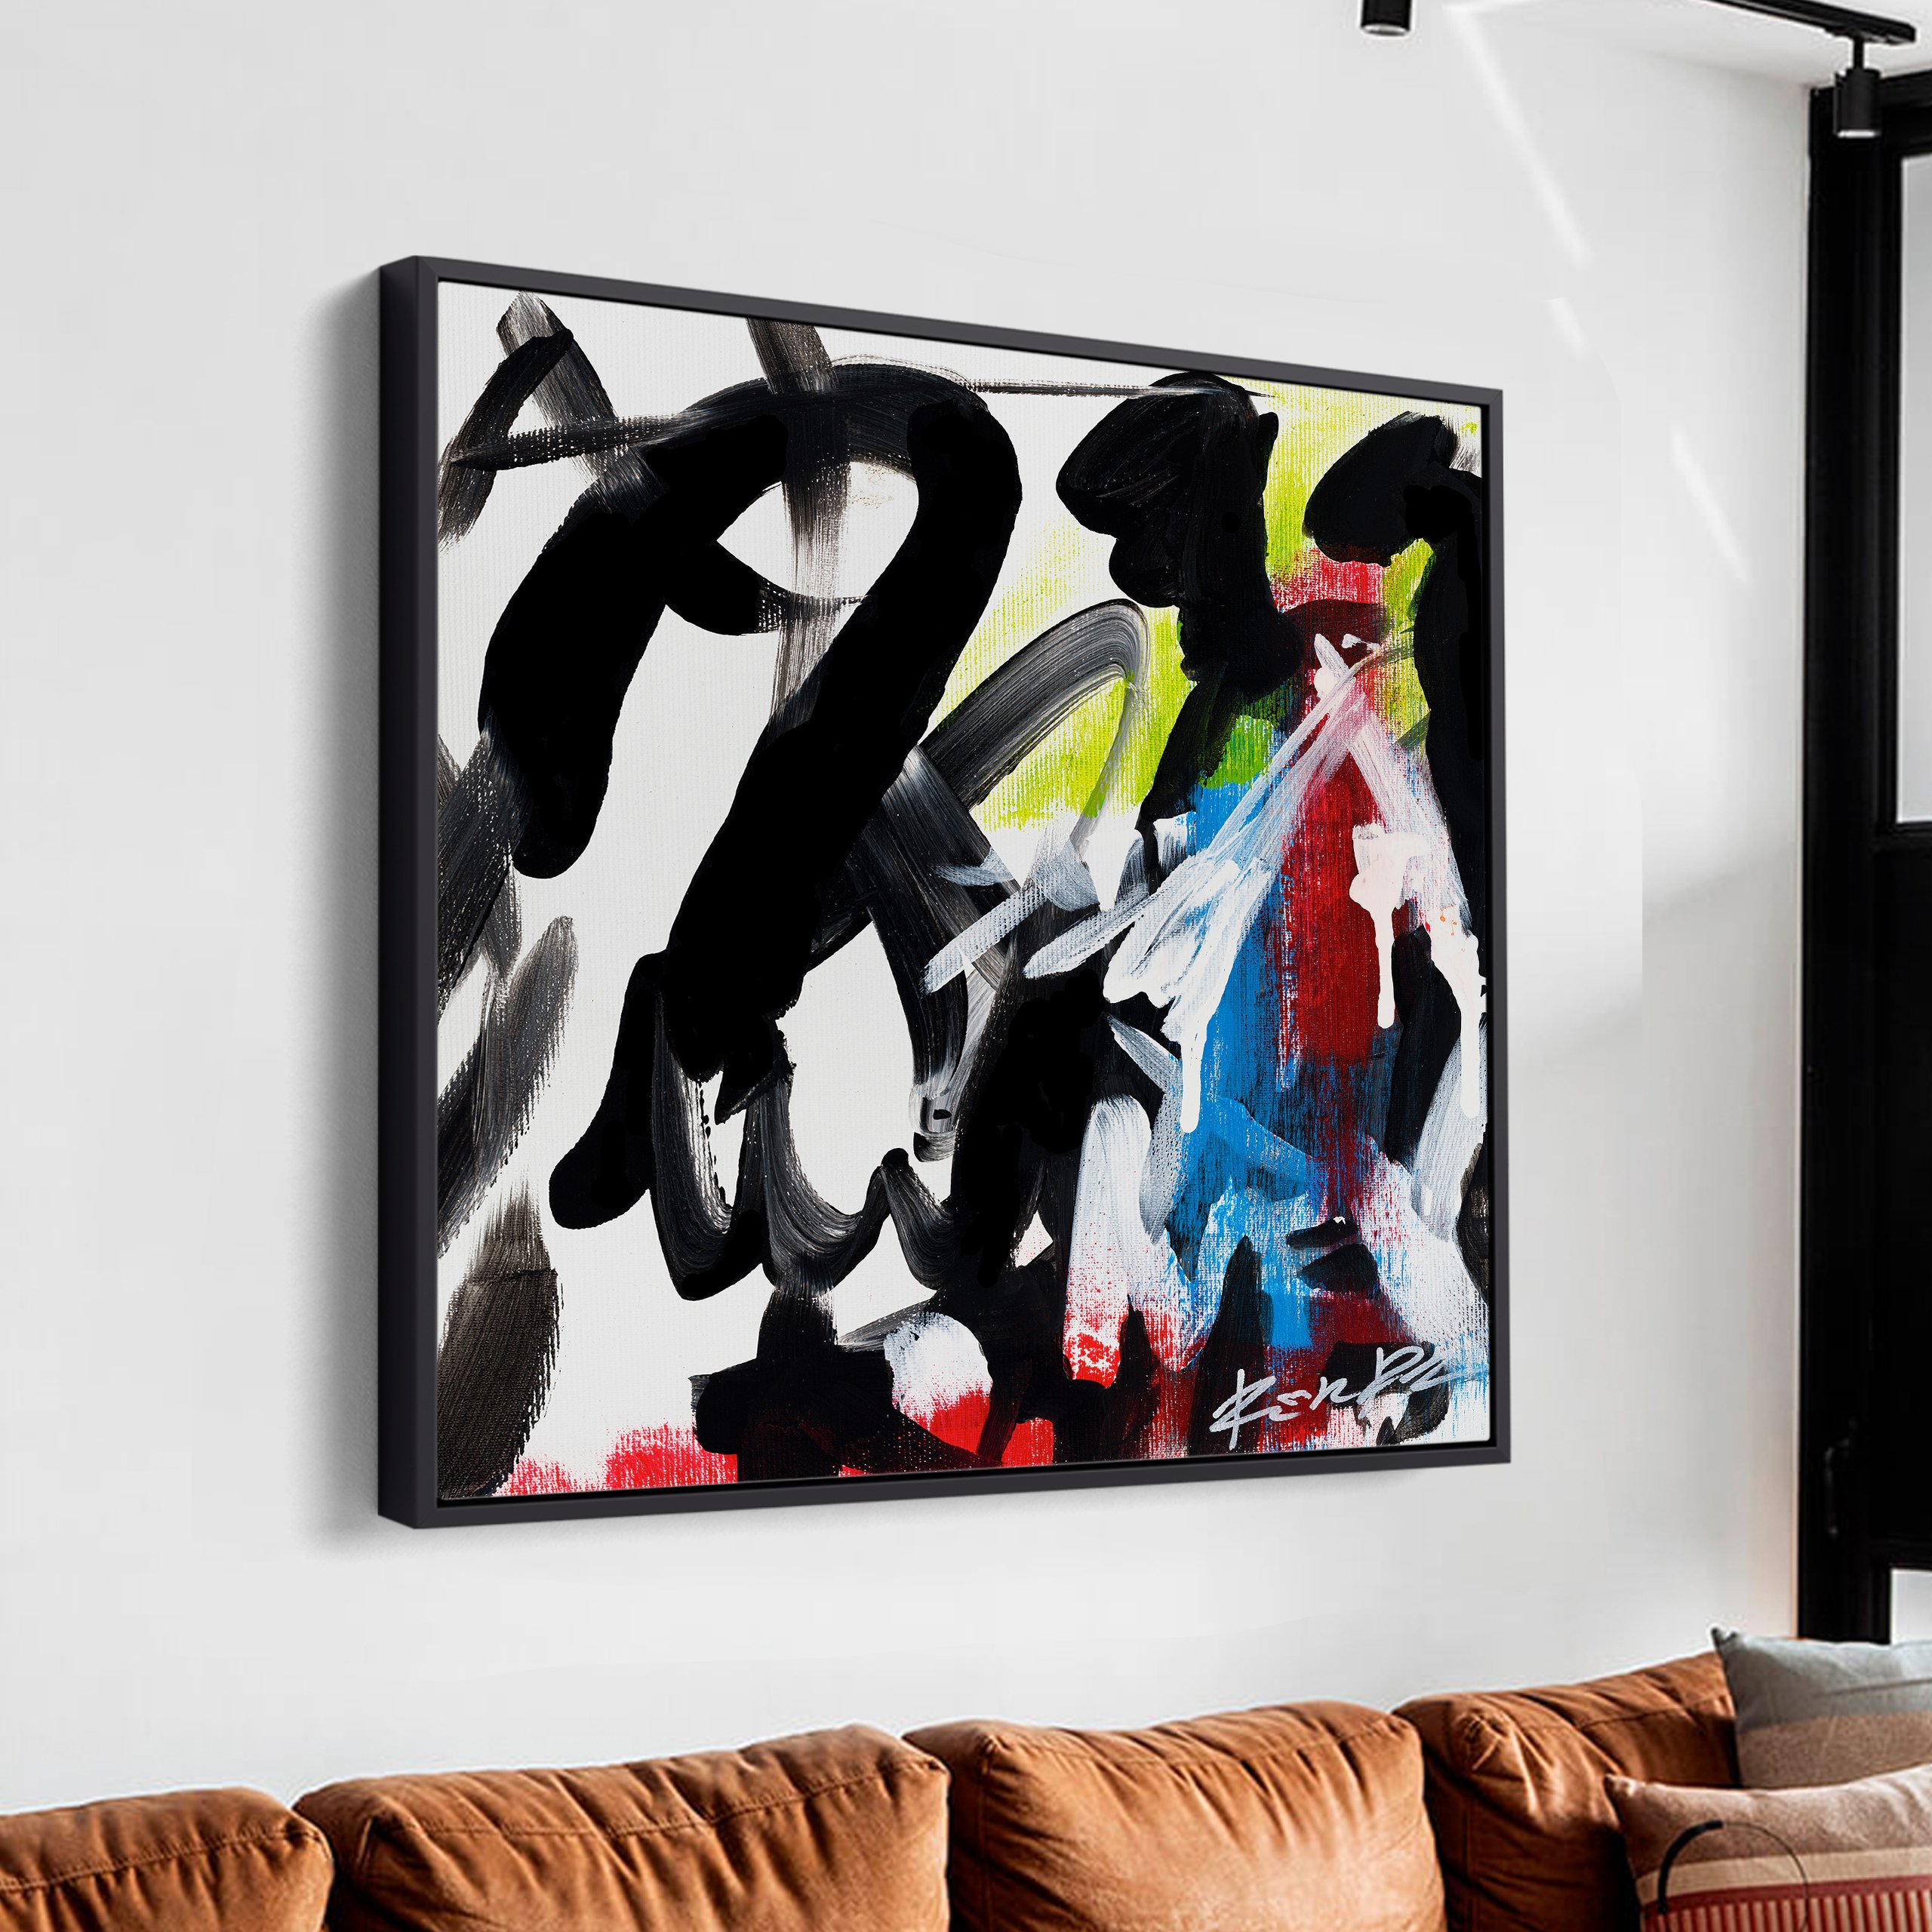 graffiti-ron-deri-square-painting-abstract